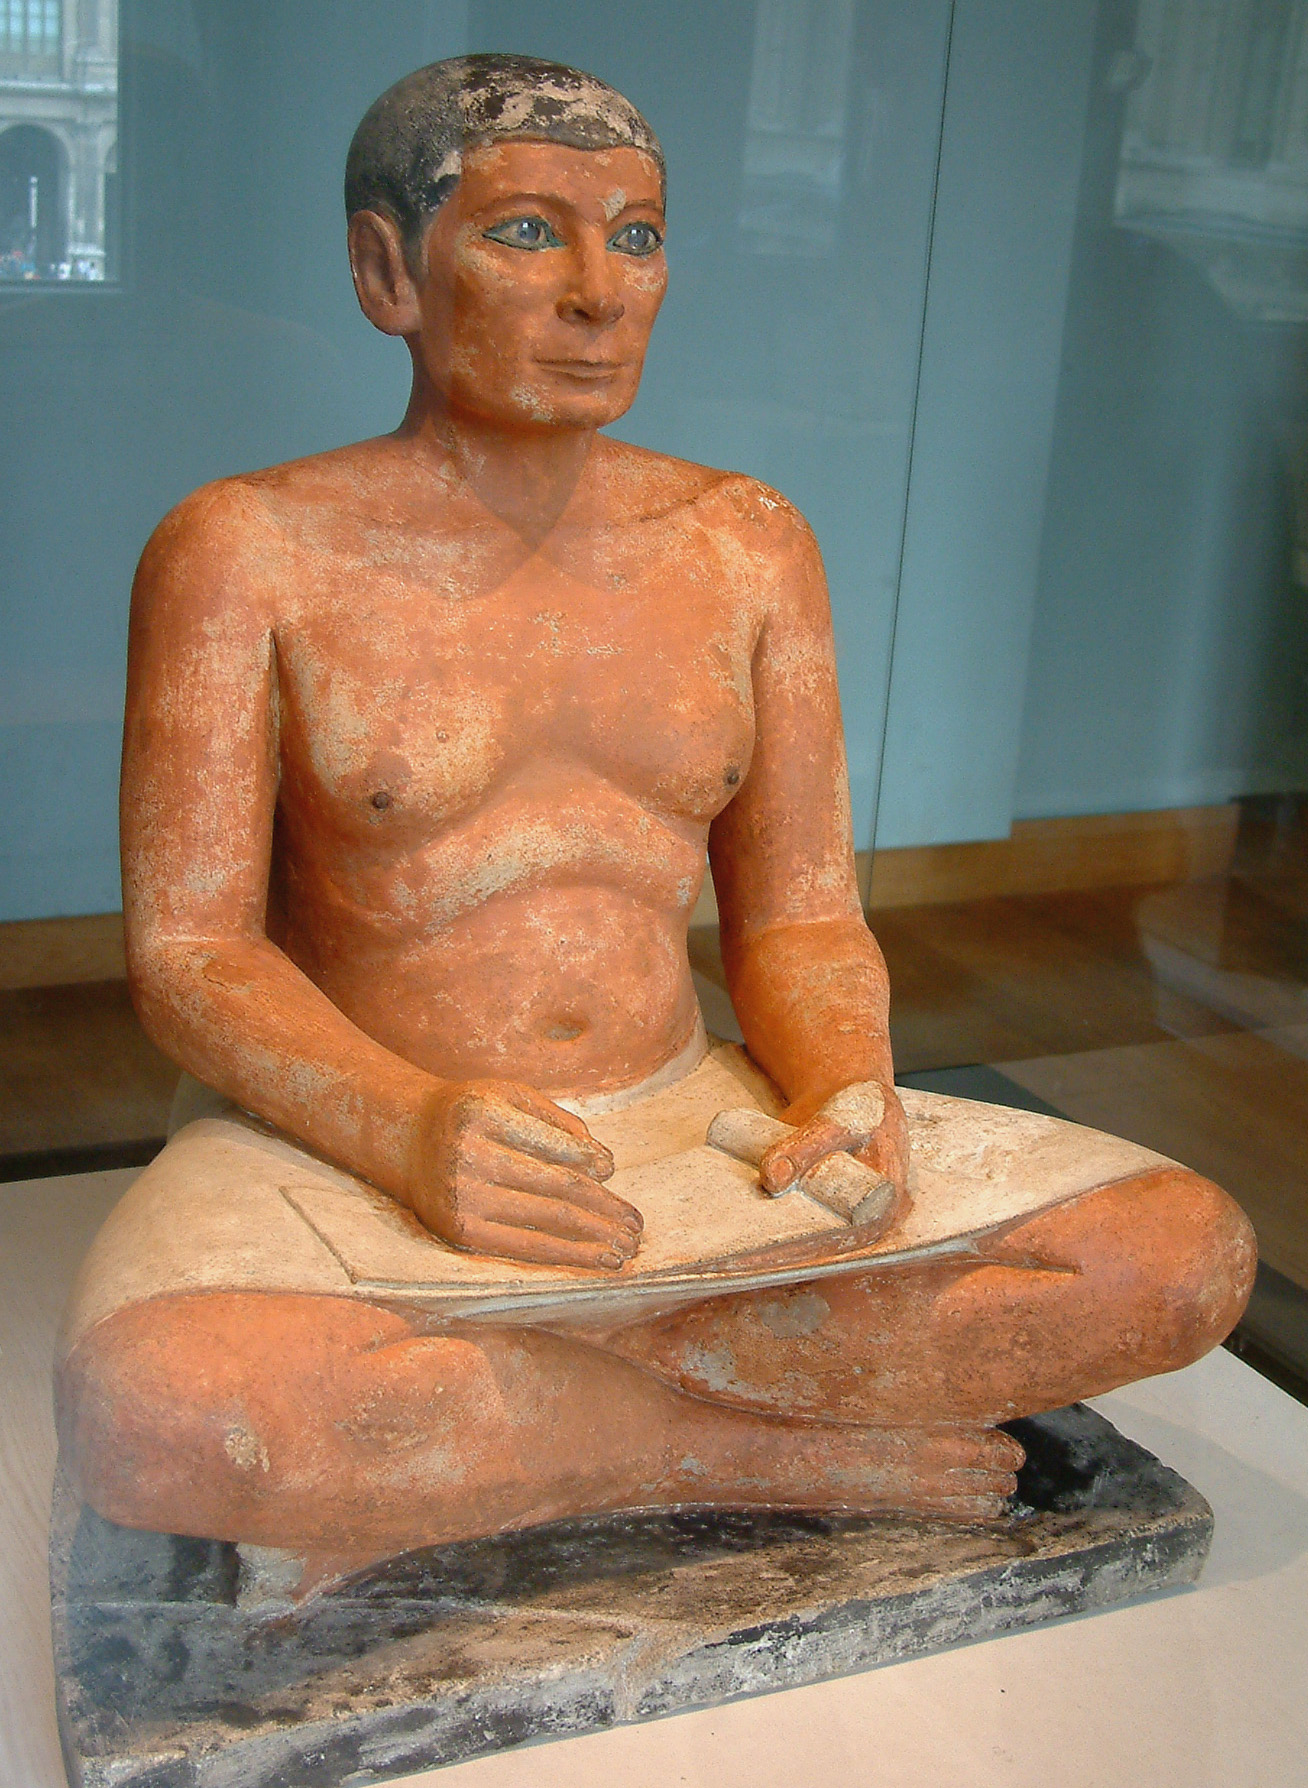 http://upload.wikimedia.org/wikipedia/commons/9/91/Egypte_louvre_285_scribe.jpg